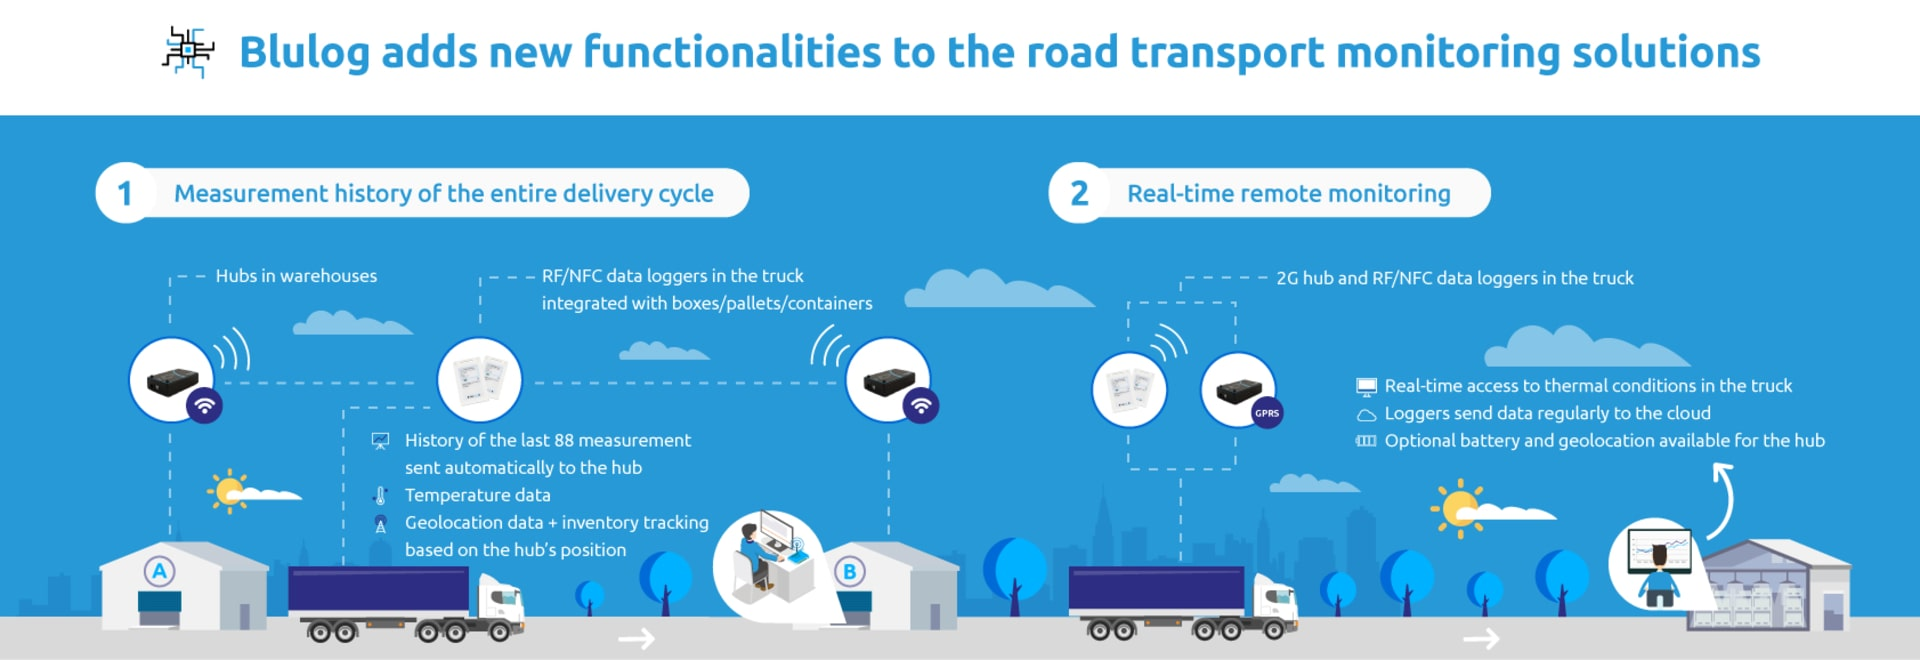 Blulog unveils new functionalities for its road transport monitoring solution